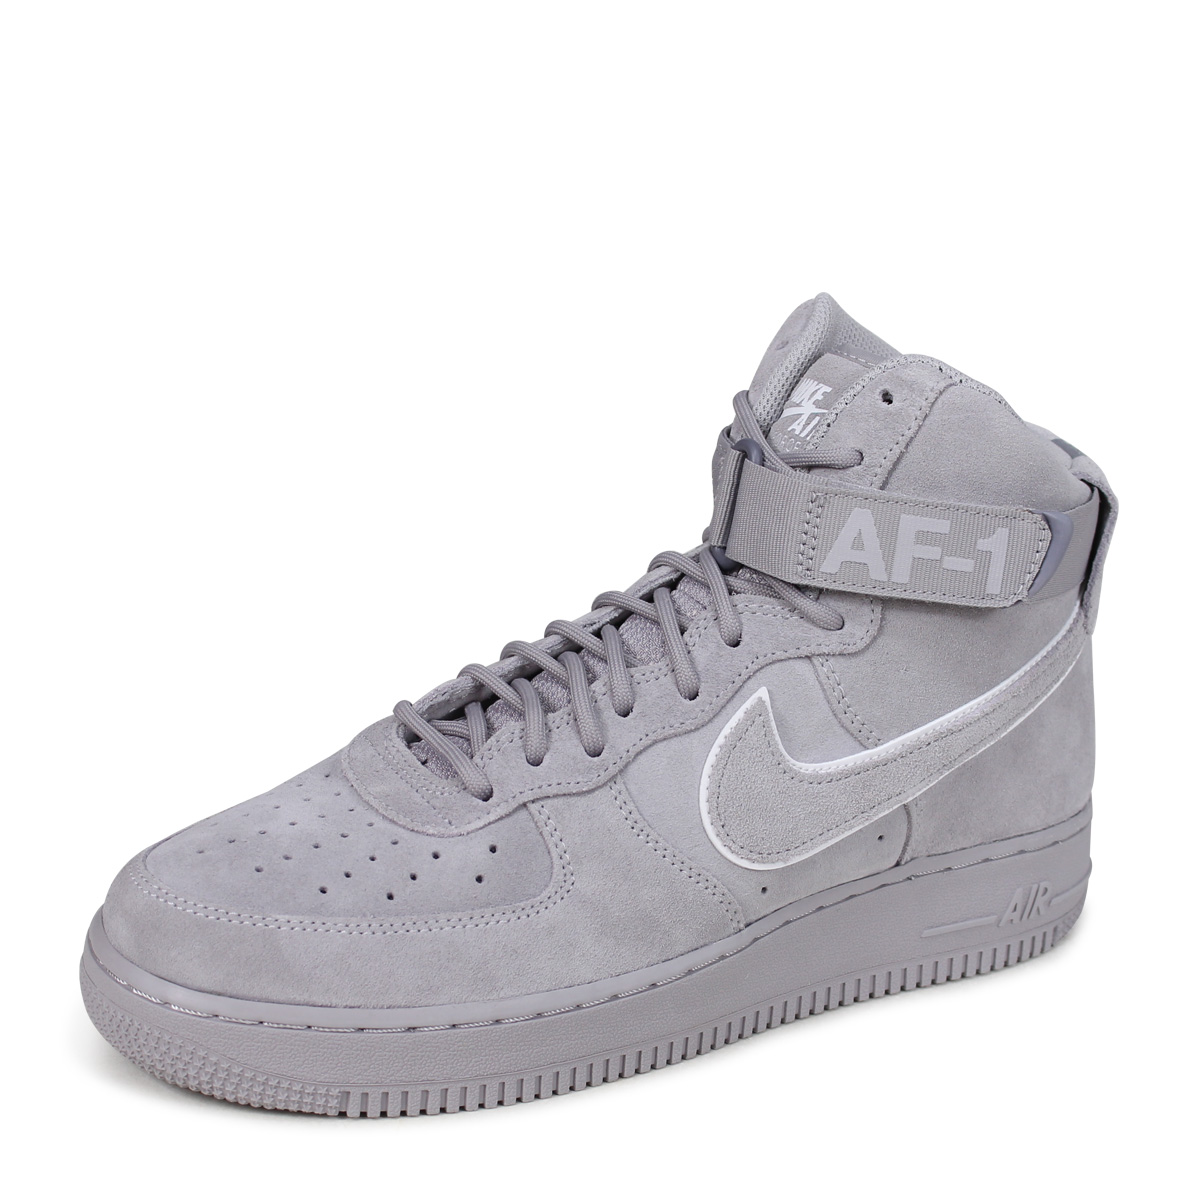 NIKE AIR FORCE 1 07 LV8 HIGH Nike air force 1 sneakers men AA1118-003 gray  [load planned Shinnyu load in reservation product 6/15 containing] [186]